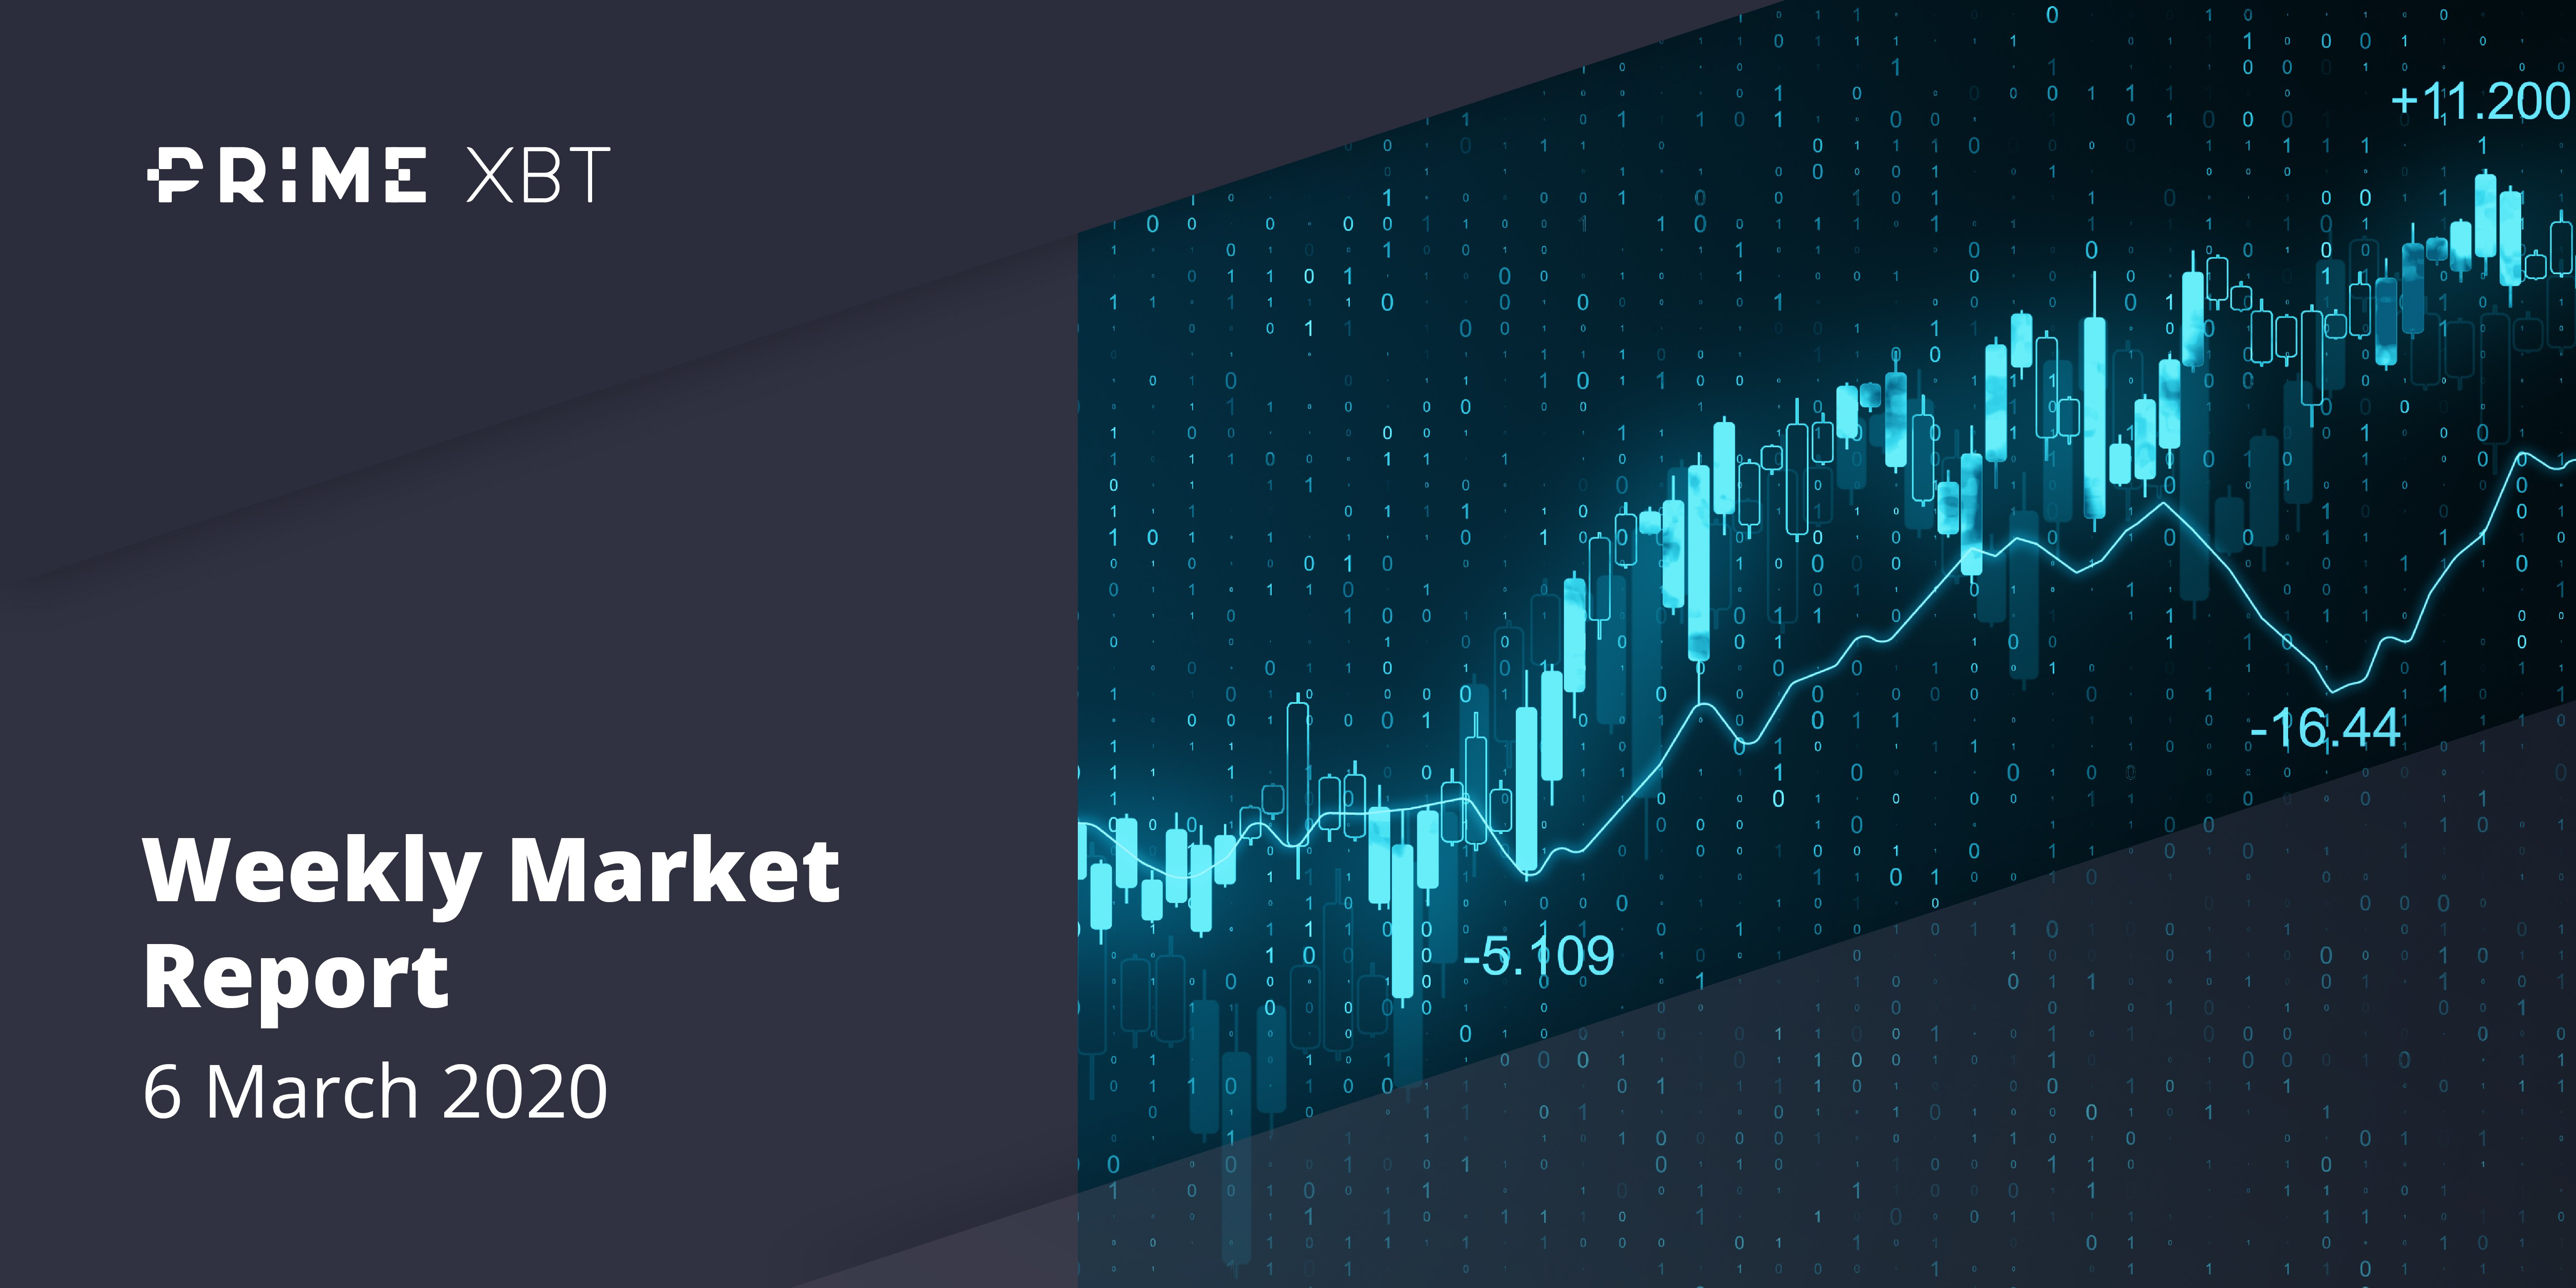 Crypto Market Report: Mixed week for Bitcoin Price but Support Level Held, BTC ATMs climbing as is Institutional Futures Interest - 2020 03 06 20.50.45